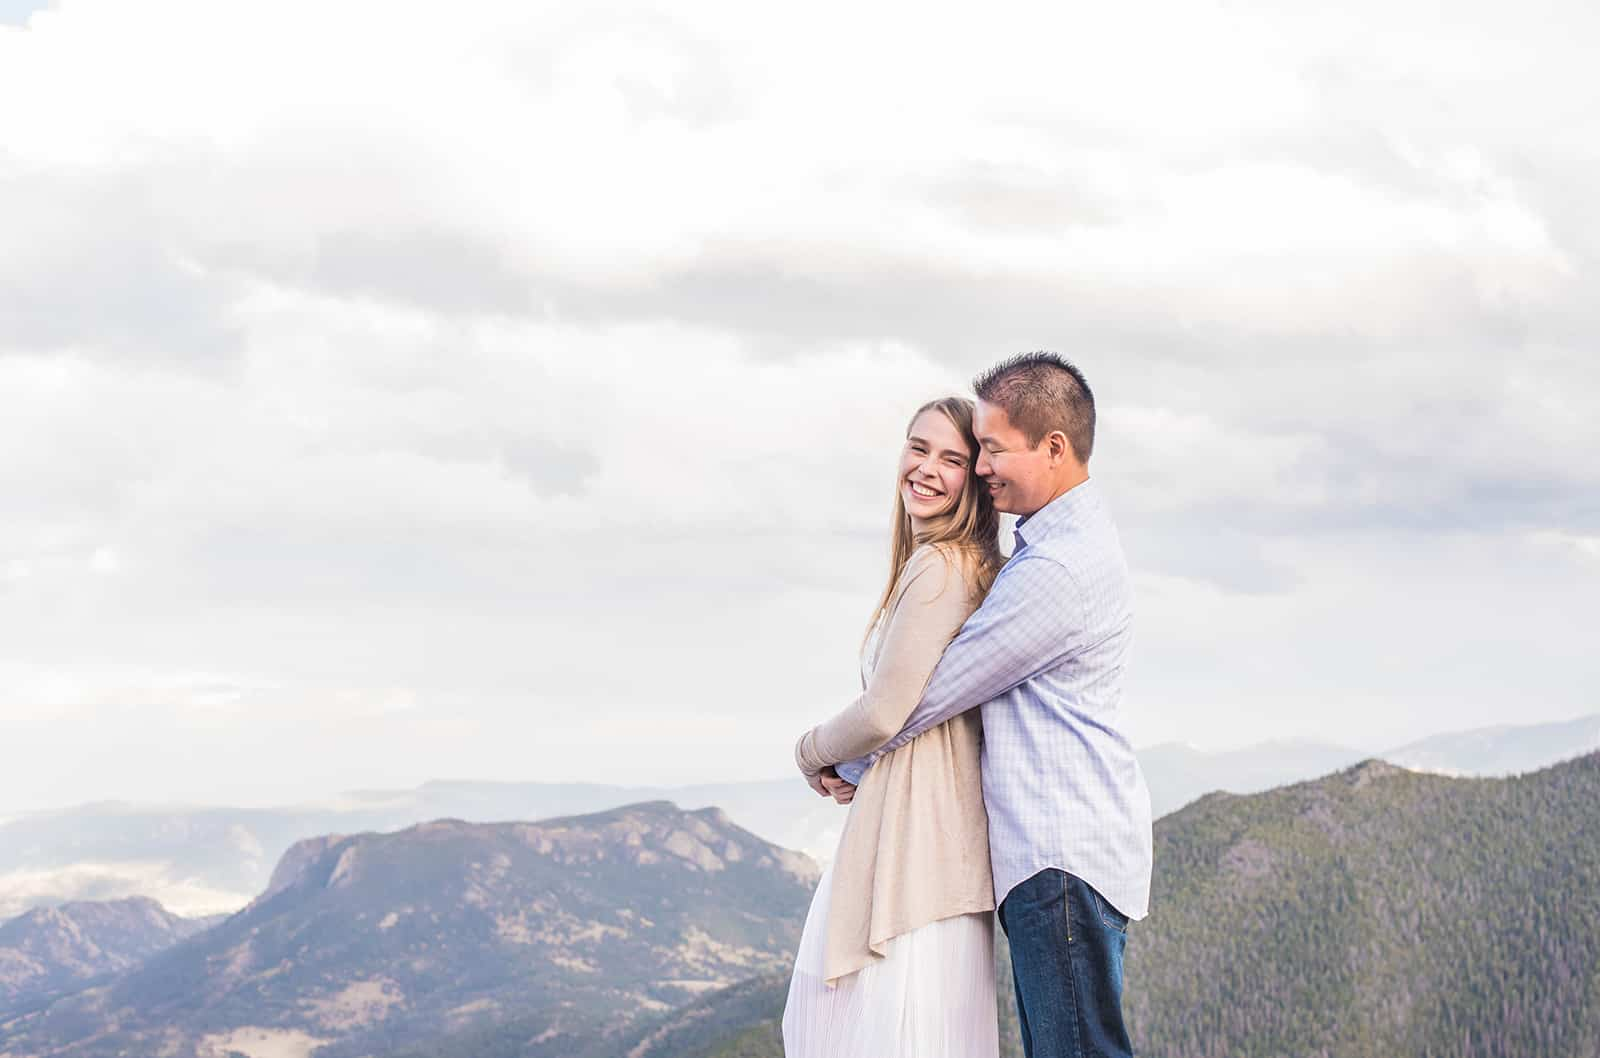 rocky mountain national park engagement photographer